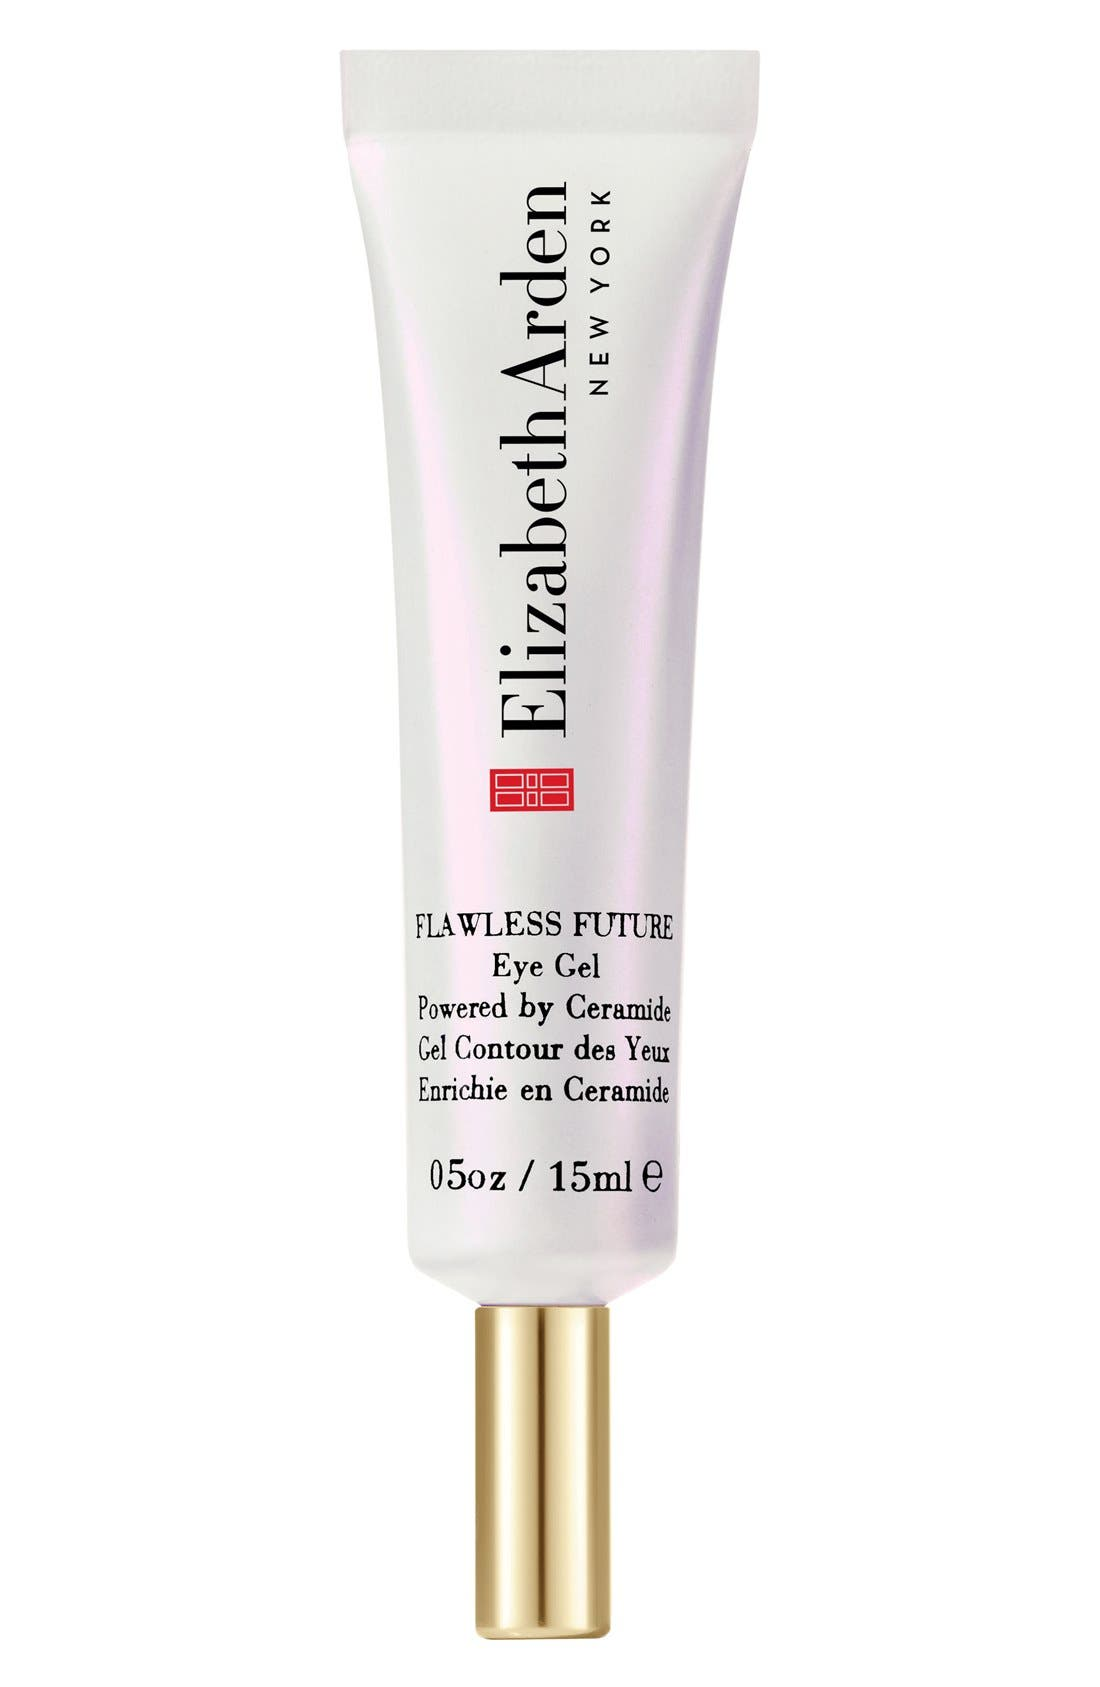 ELIZABETH ARDEN,                             FLAWLESS FUTURE Powered by Ceramide<sup>™</sup> Eye Gel,                             Main thumbnail 1, color,                             000